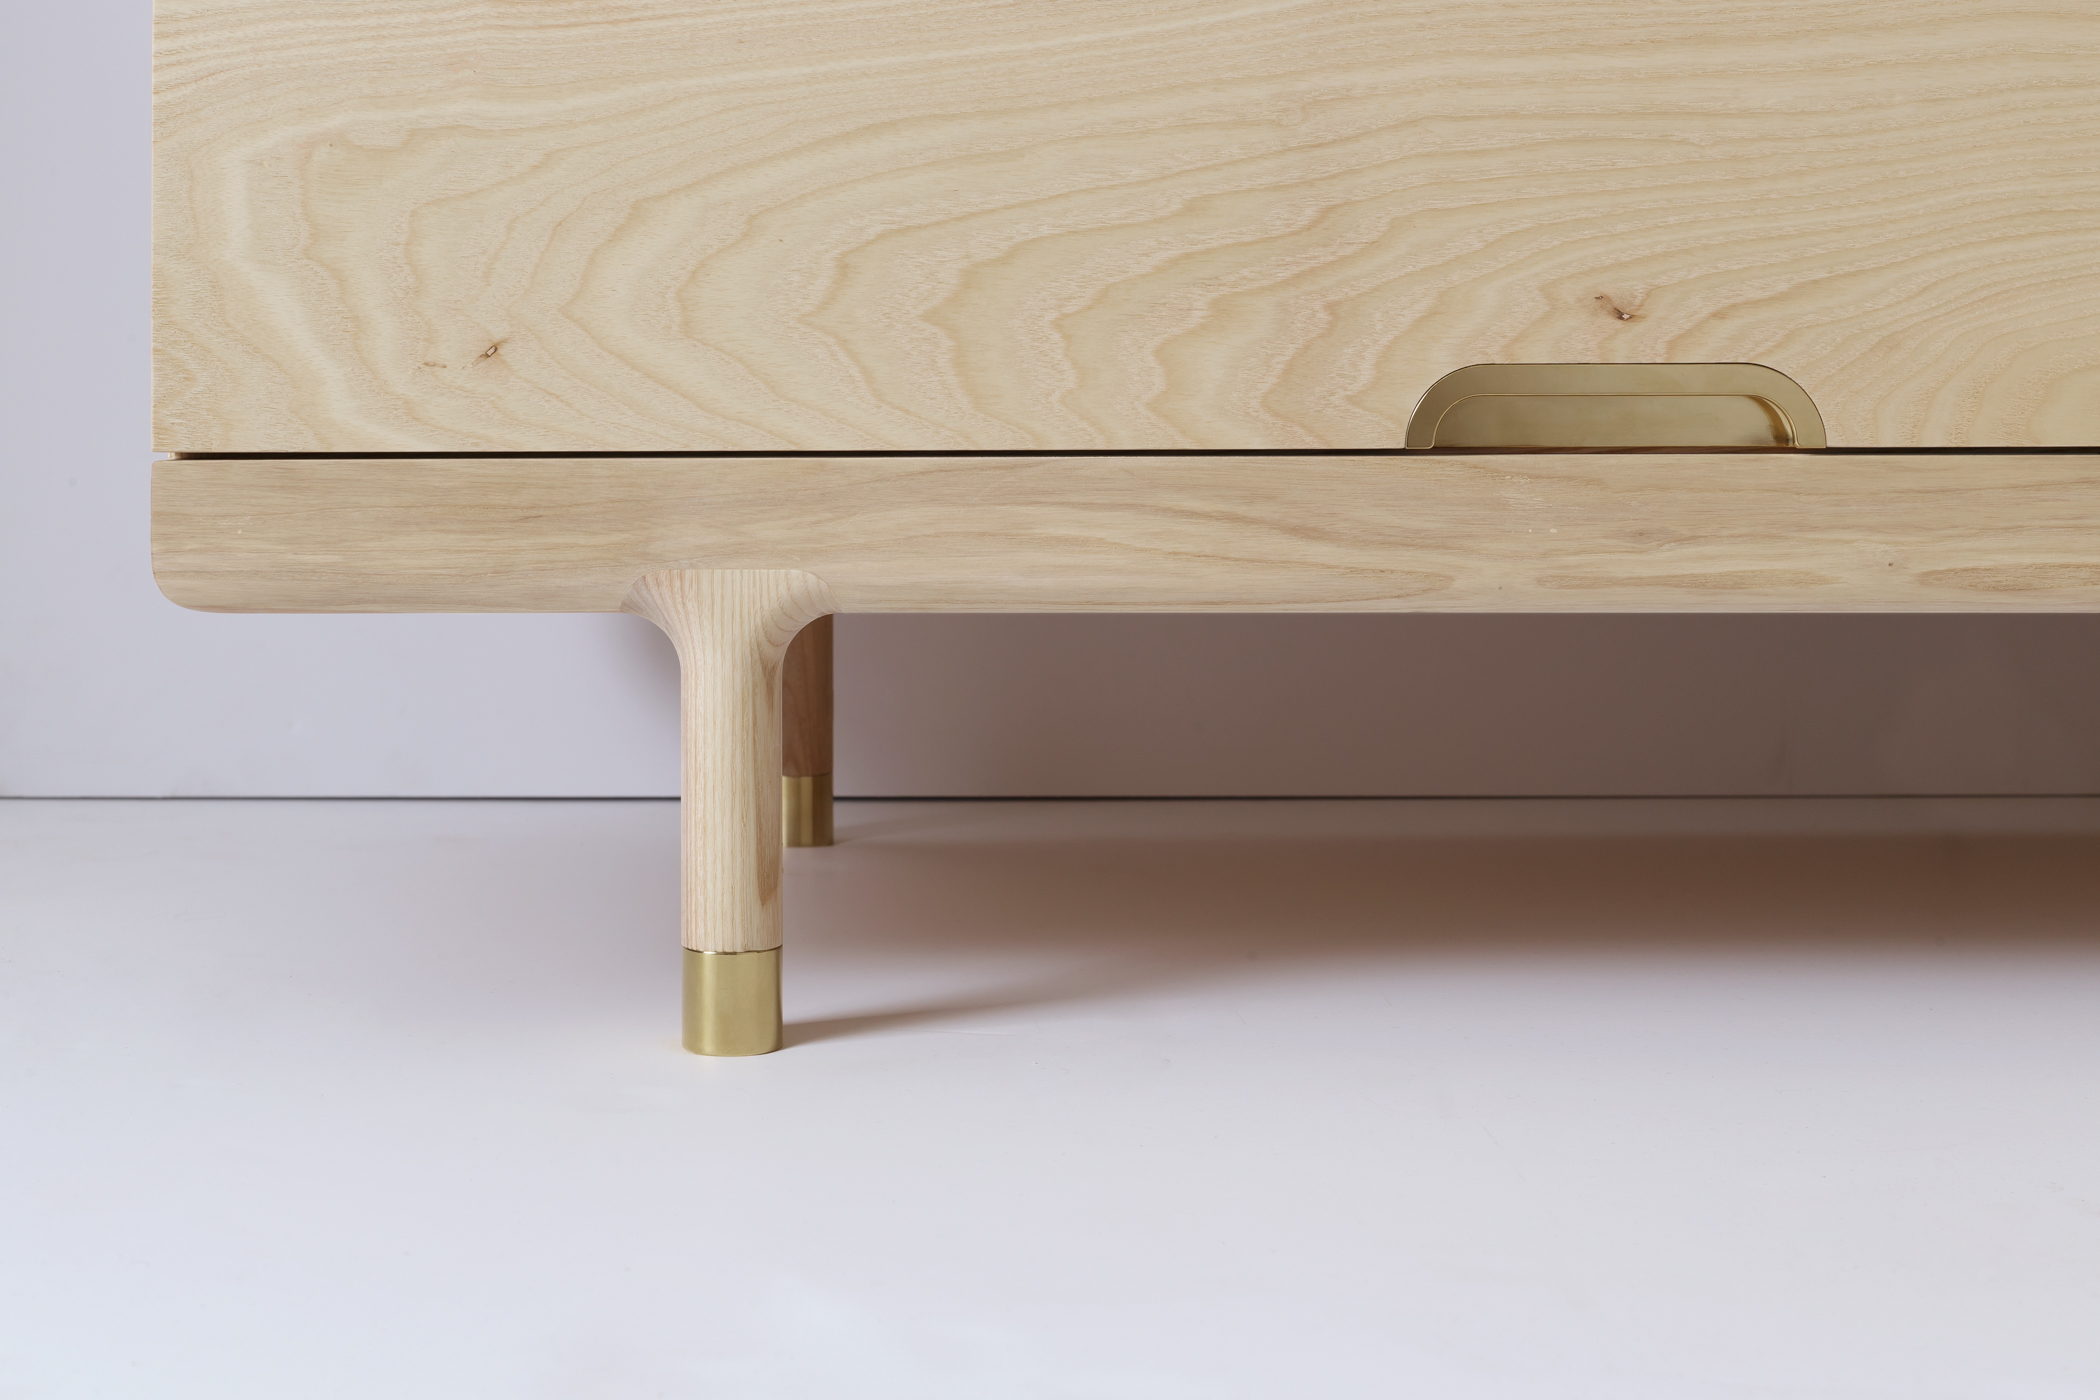 Simple Dresser Brass Foot and Drawer Pull Detail